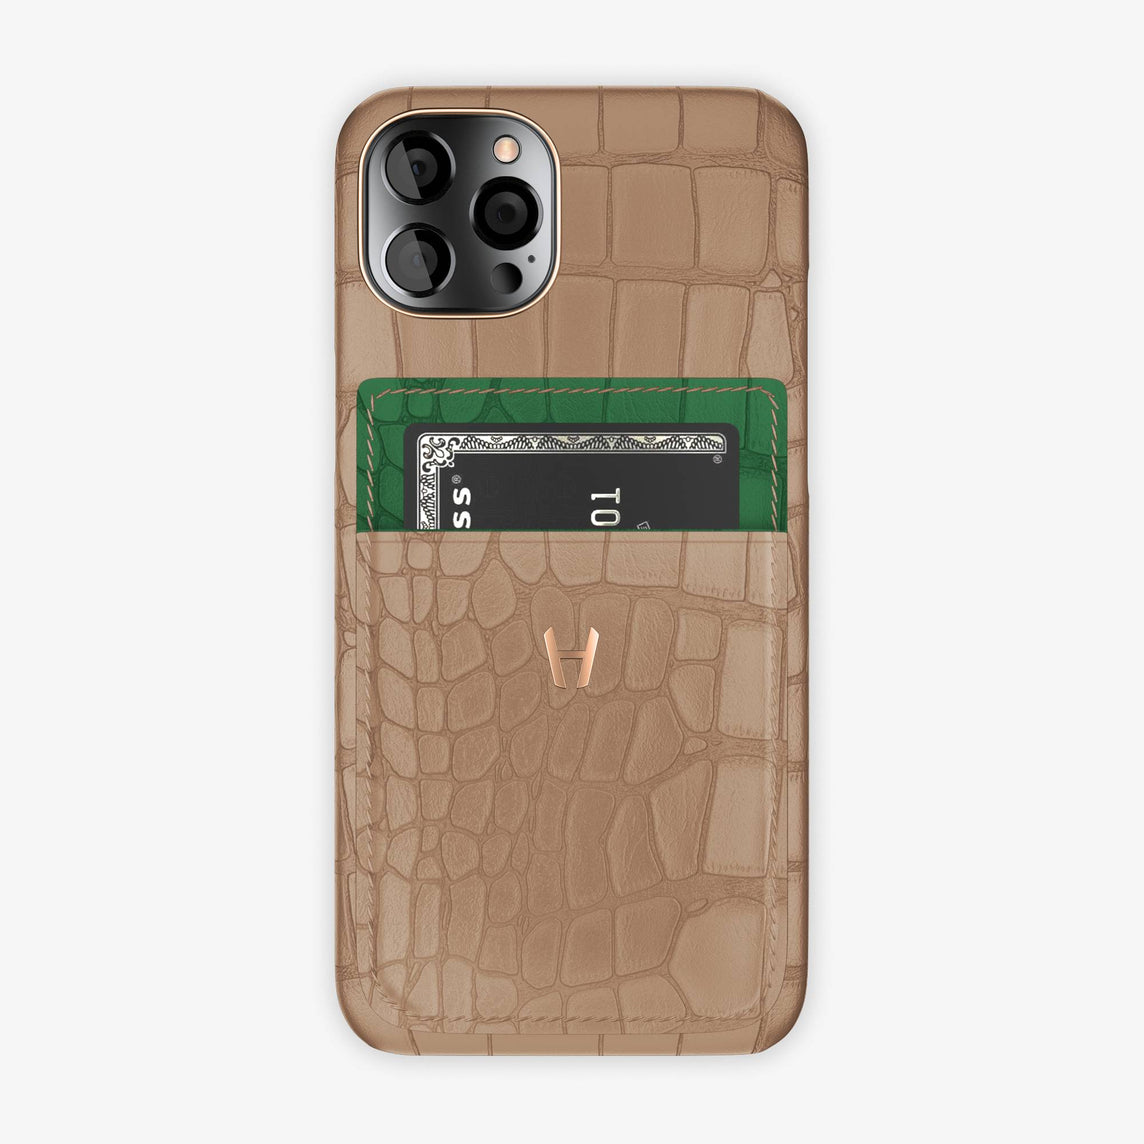 Alligator Pocket Case iPhone 12 & 12 Pro | Latte/Green Emerald - Rose Gold